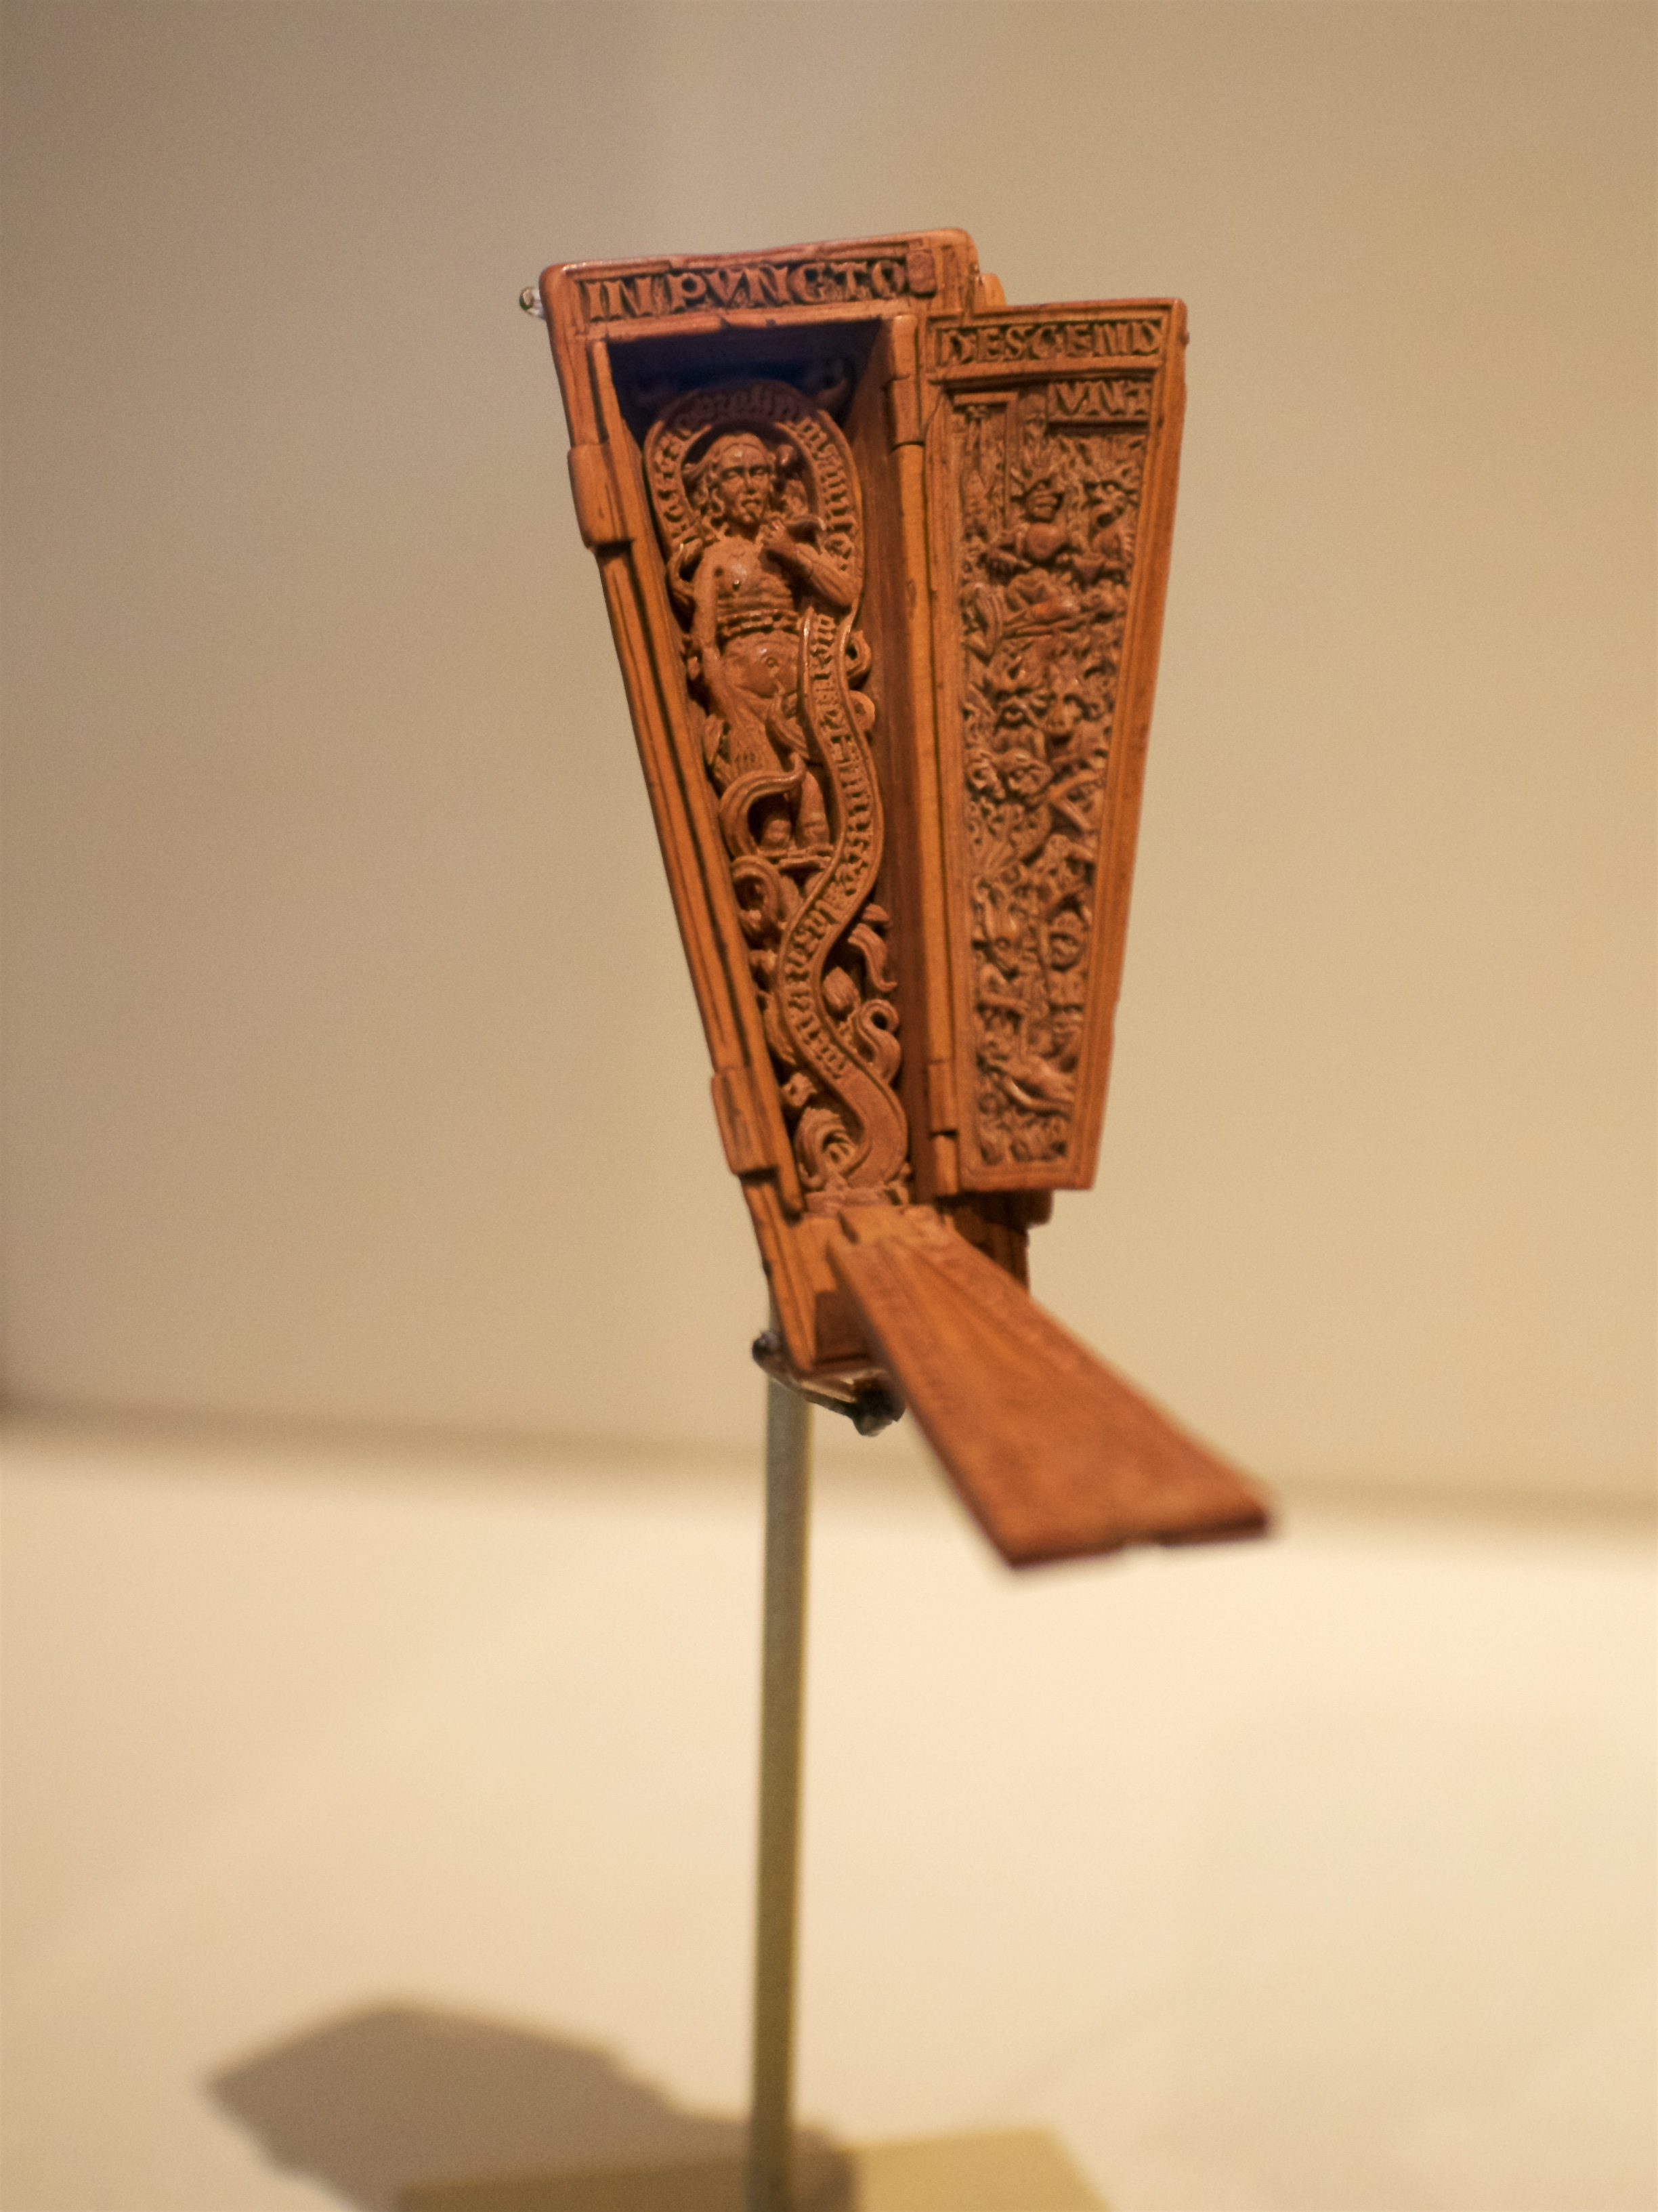 Miniature Coffin with Dives in Hell